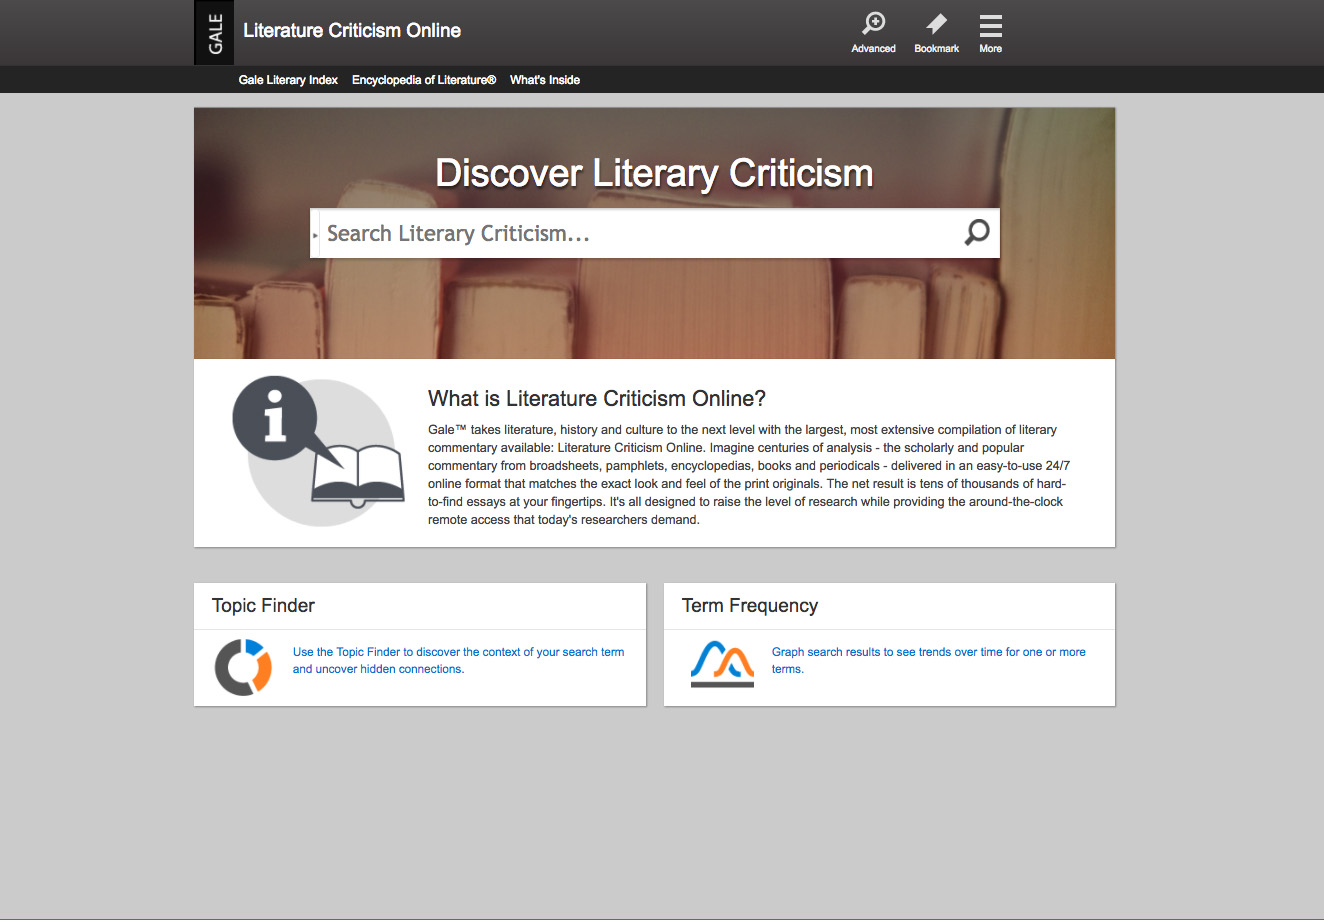 Literature Criticism Online Home Page screenshot